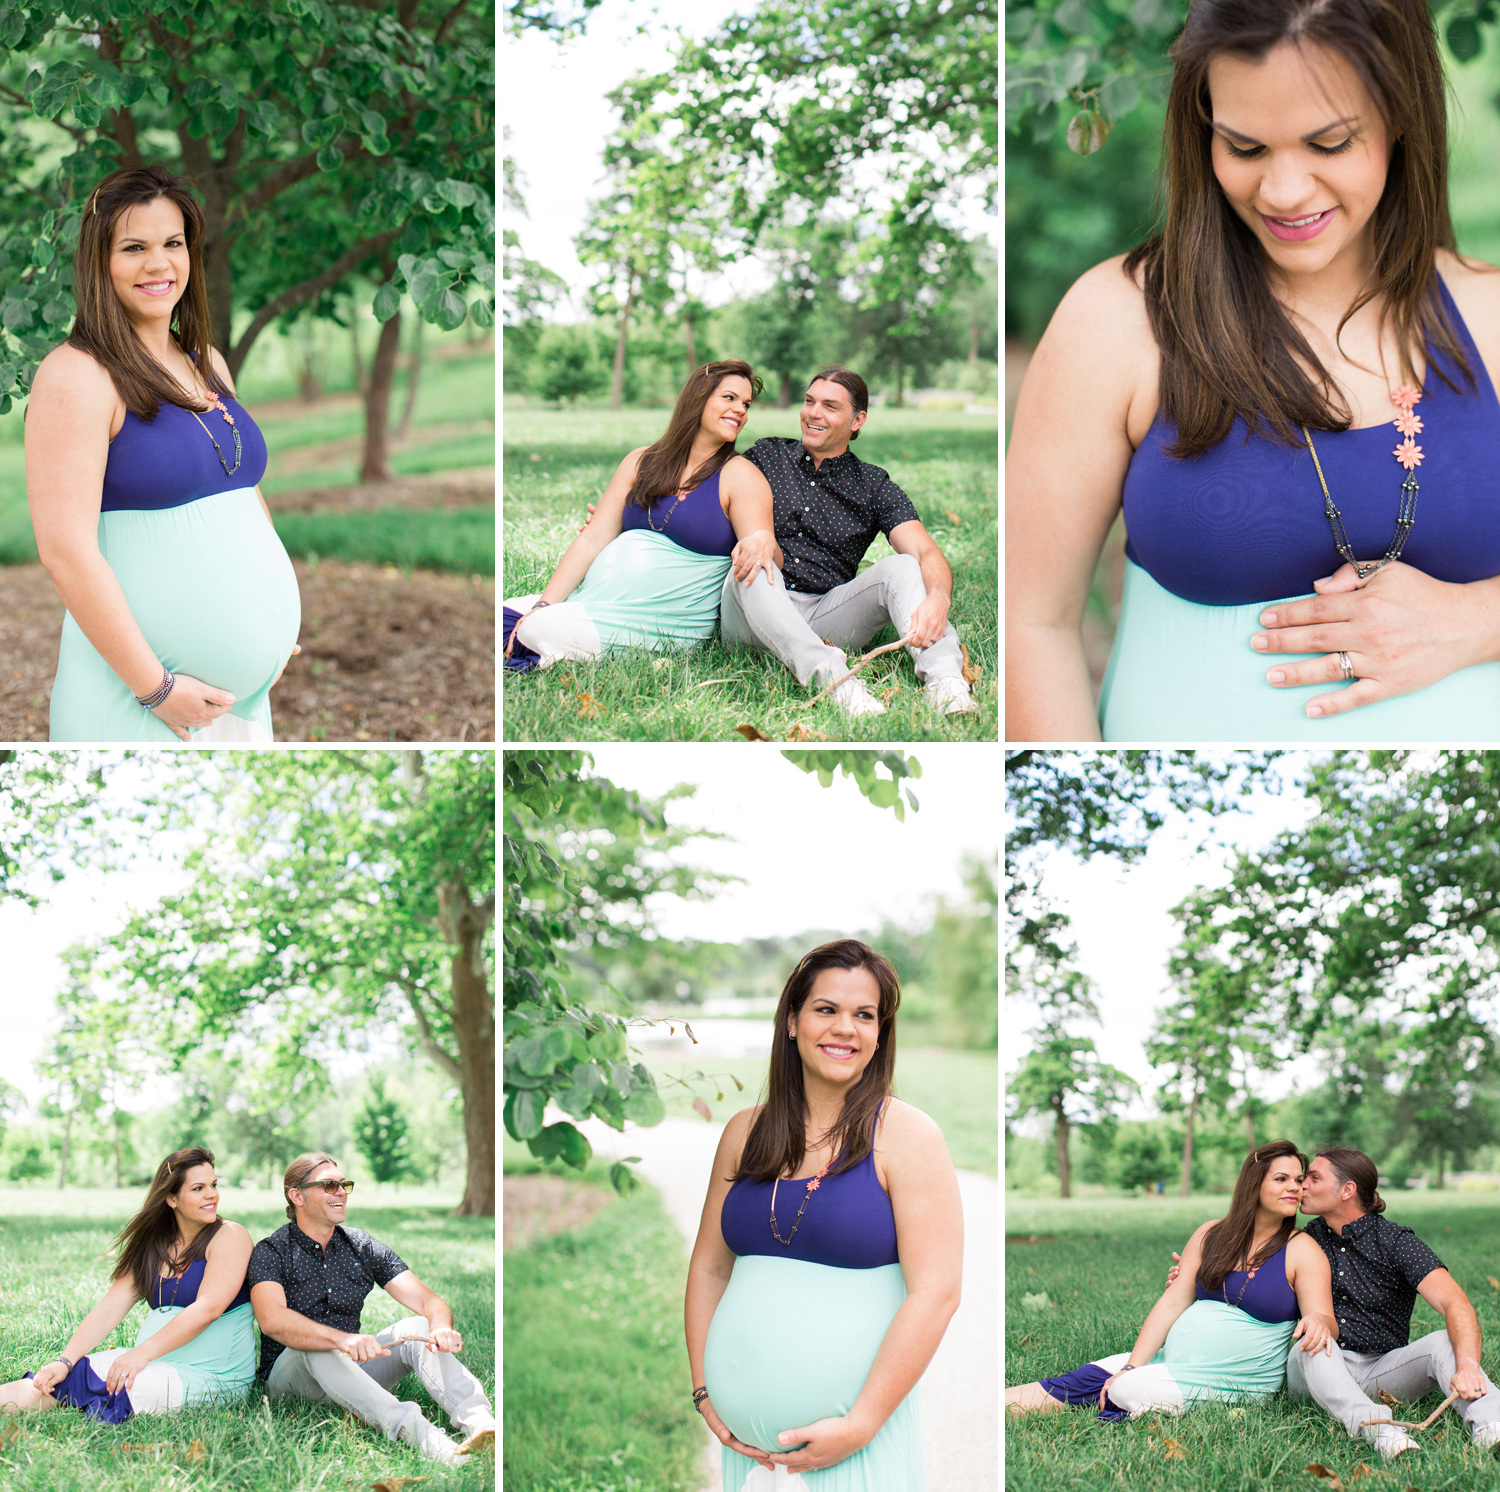 st-louis-maternity-photographer009